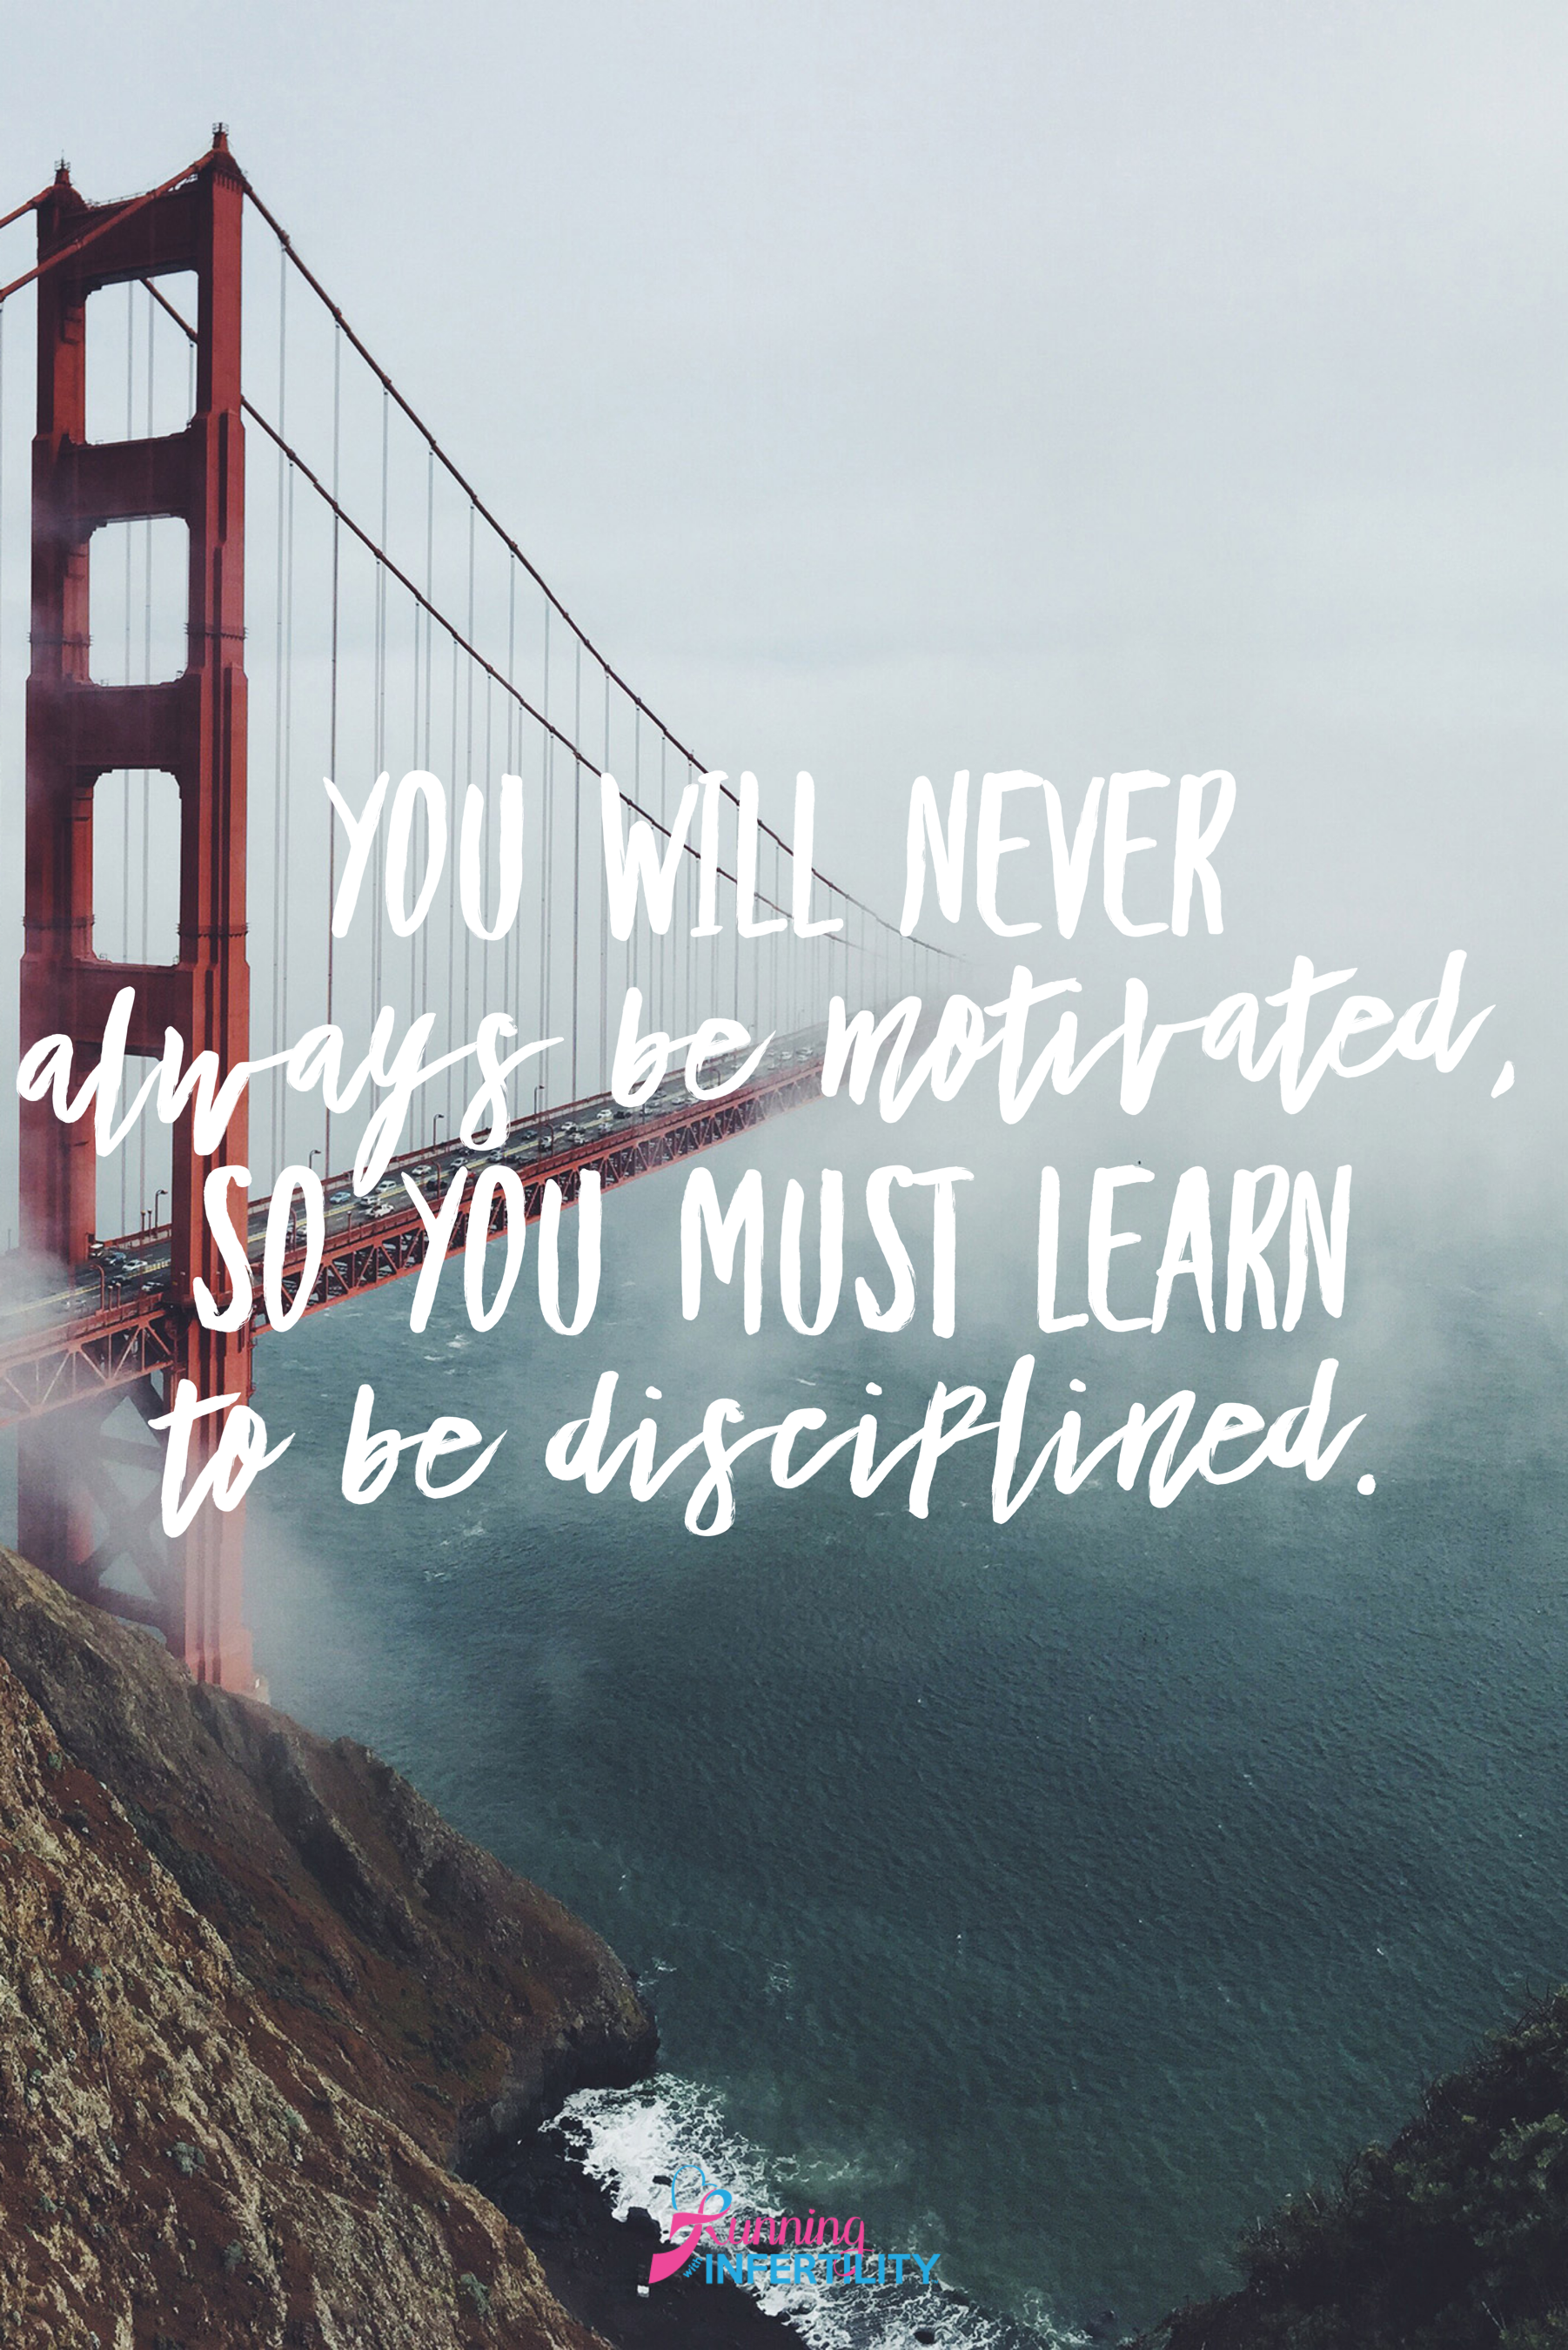 you will never always be motivated so you must learn to be disciplined quote for pinterest